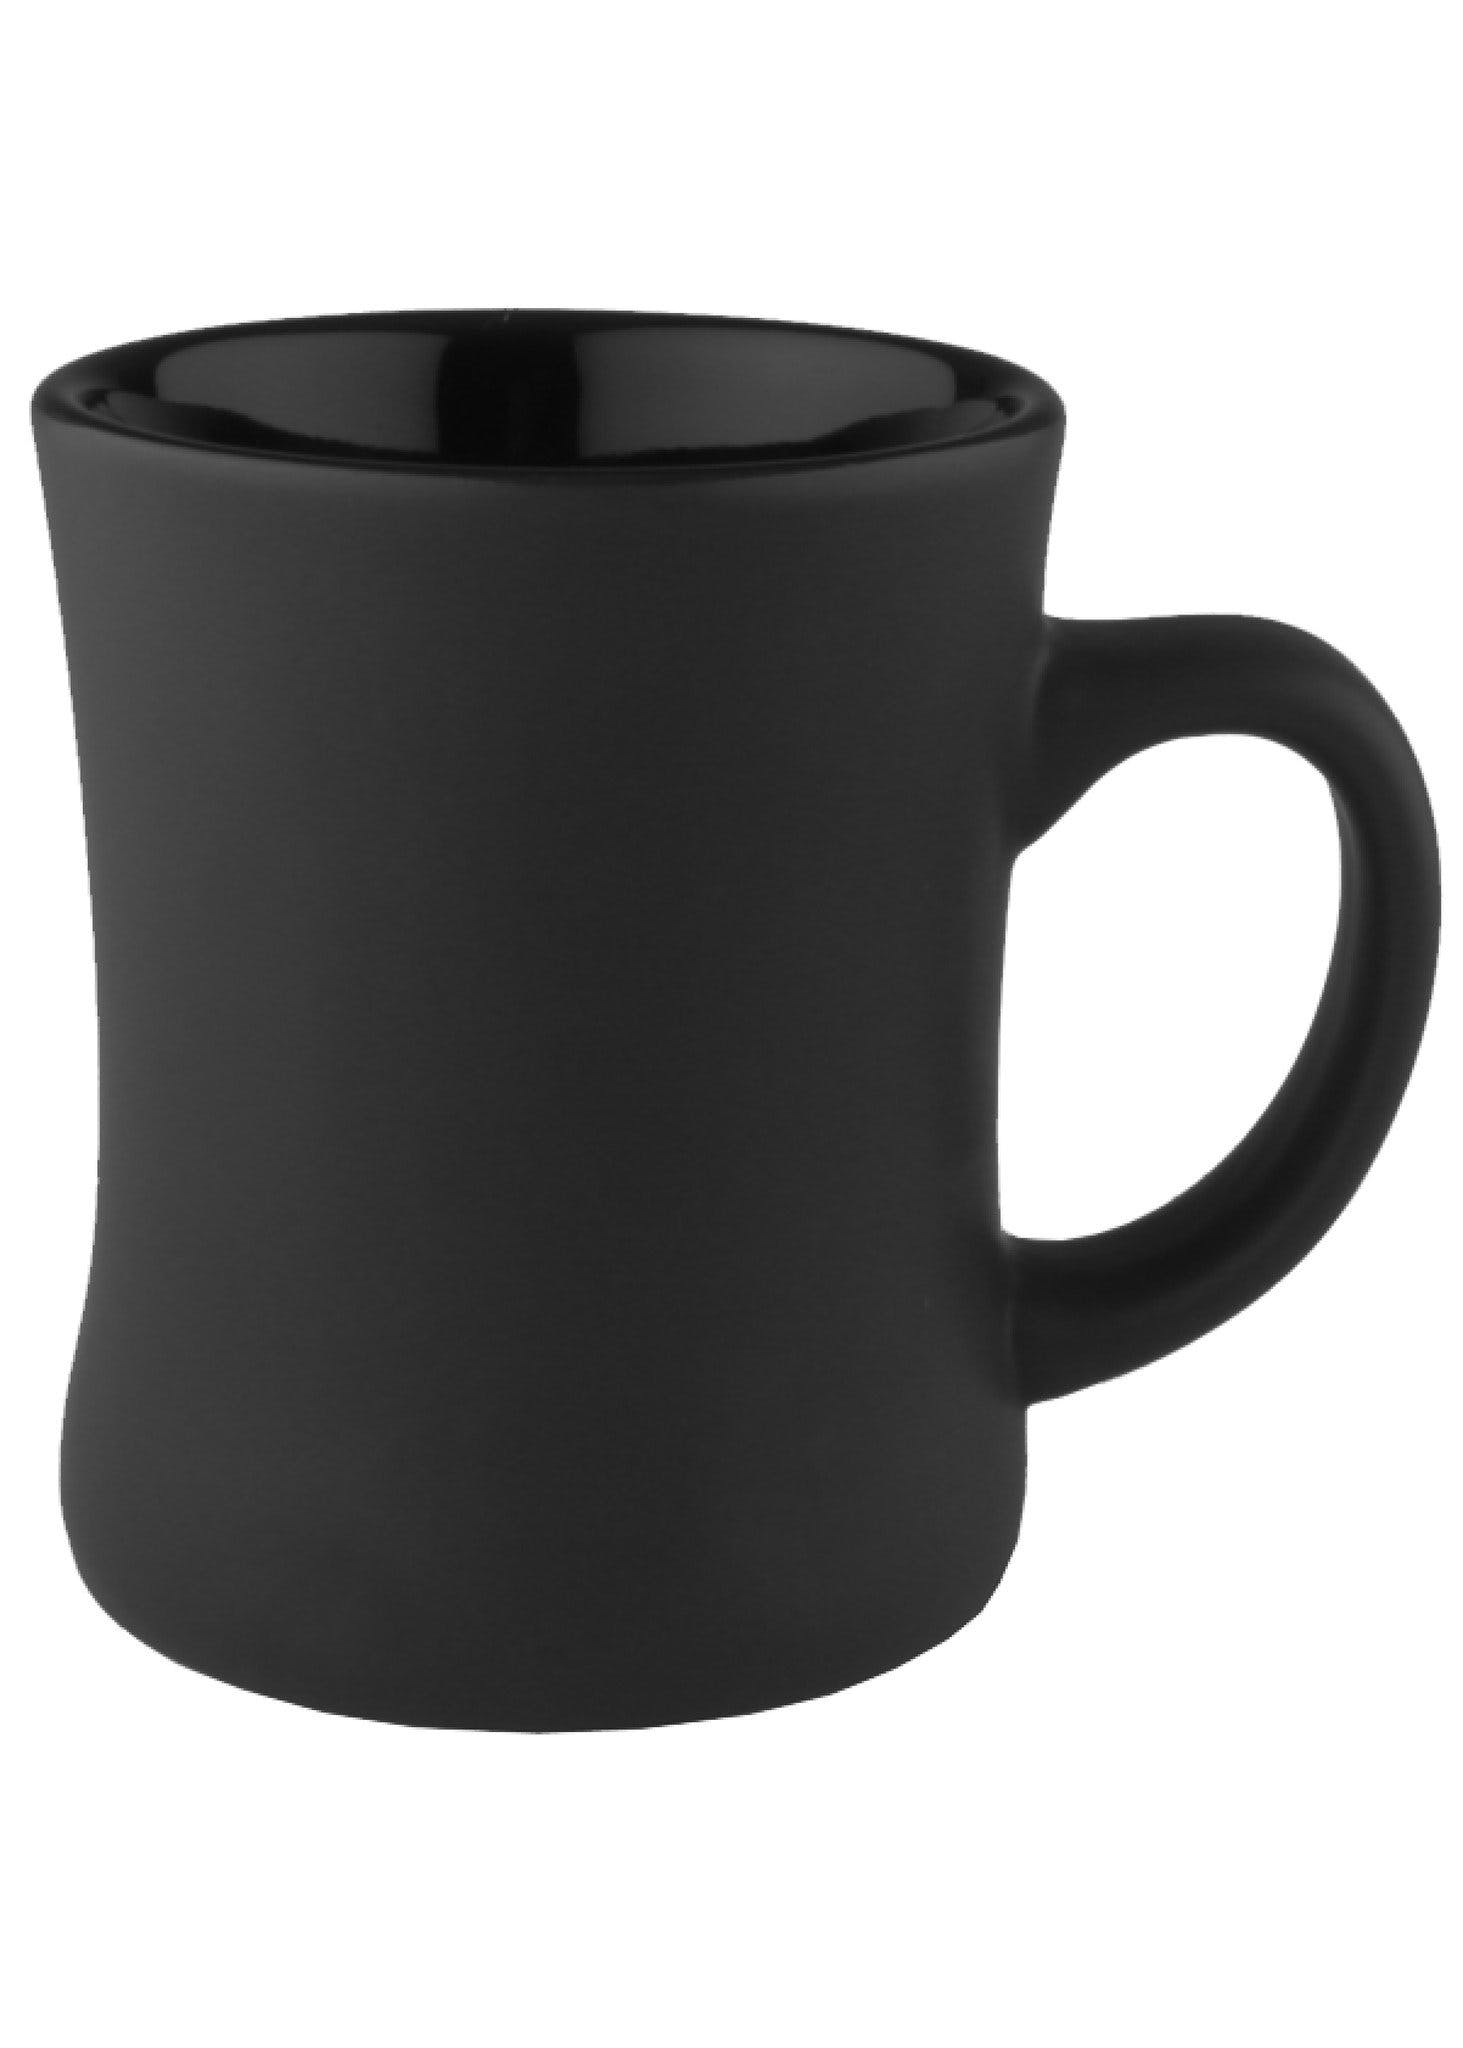 7ab6554ab11 60+ Ceramic Mugs suppliers on Kinnek. Discover the best suppliers ...